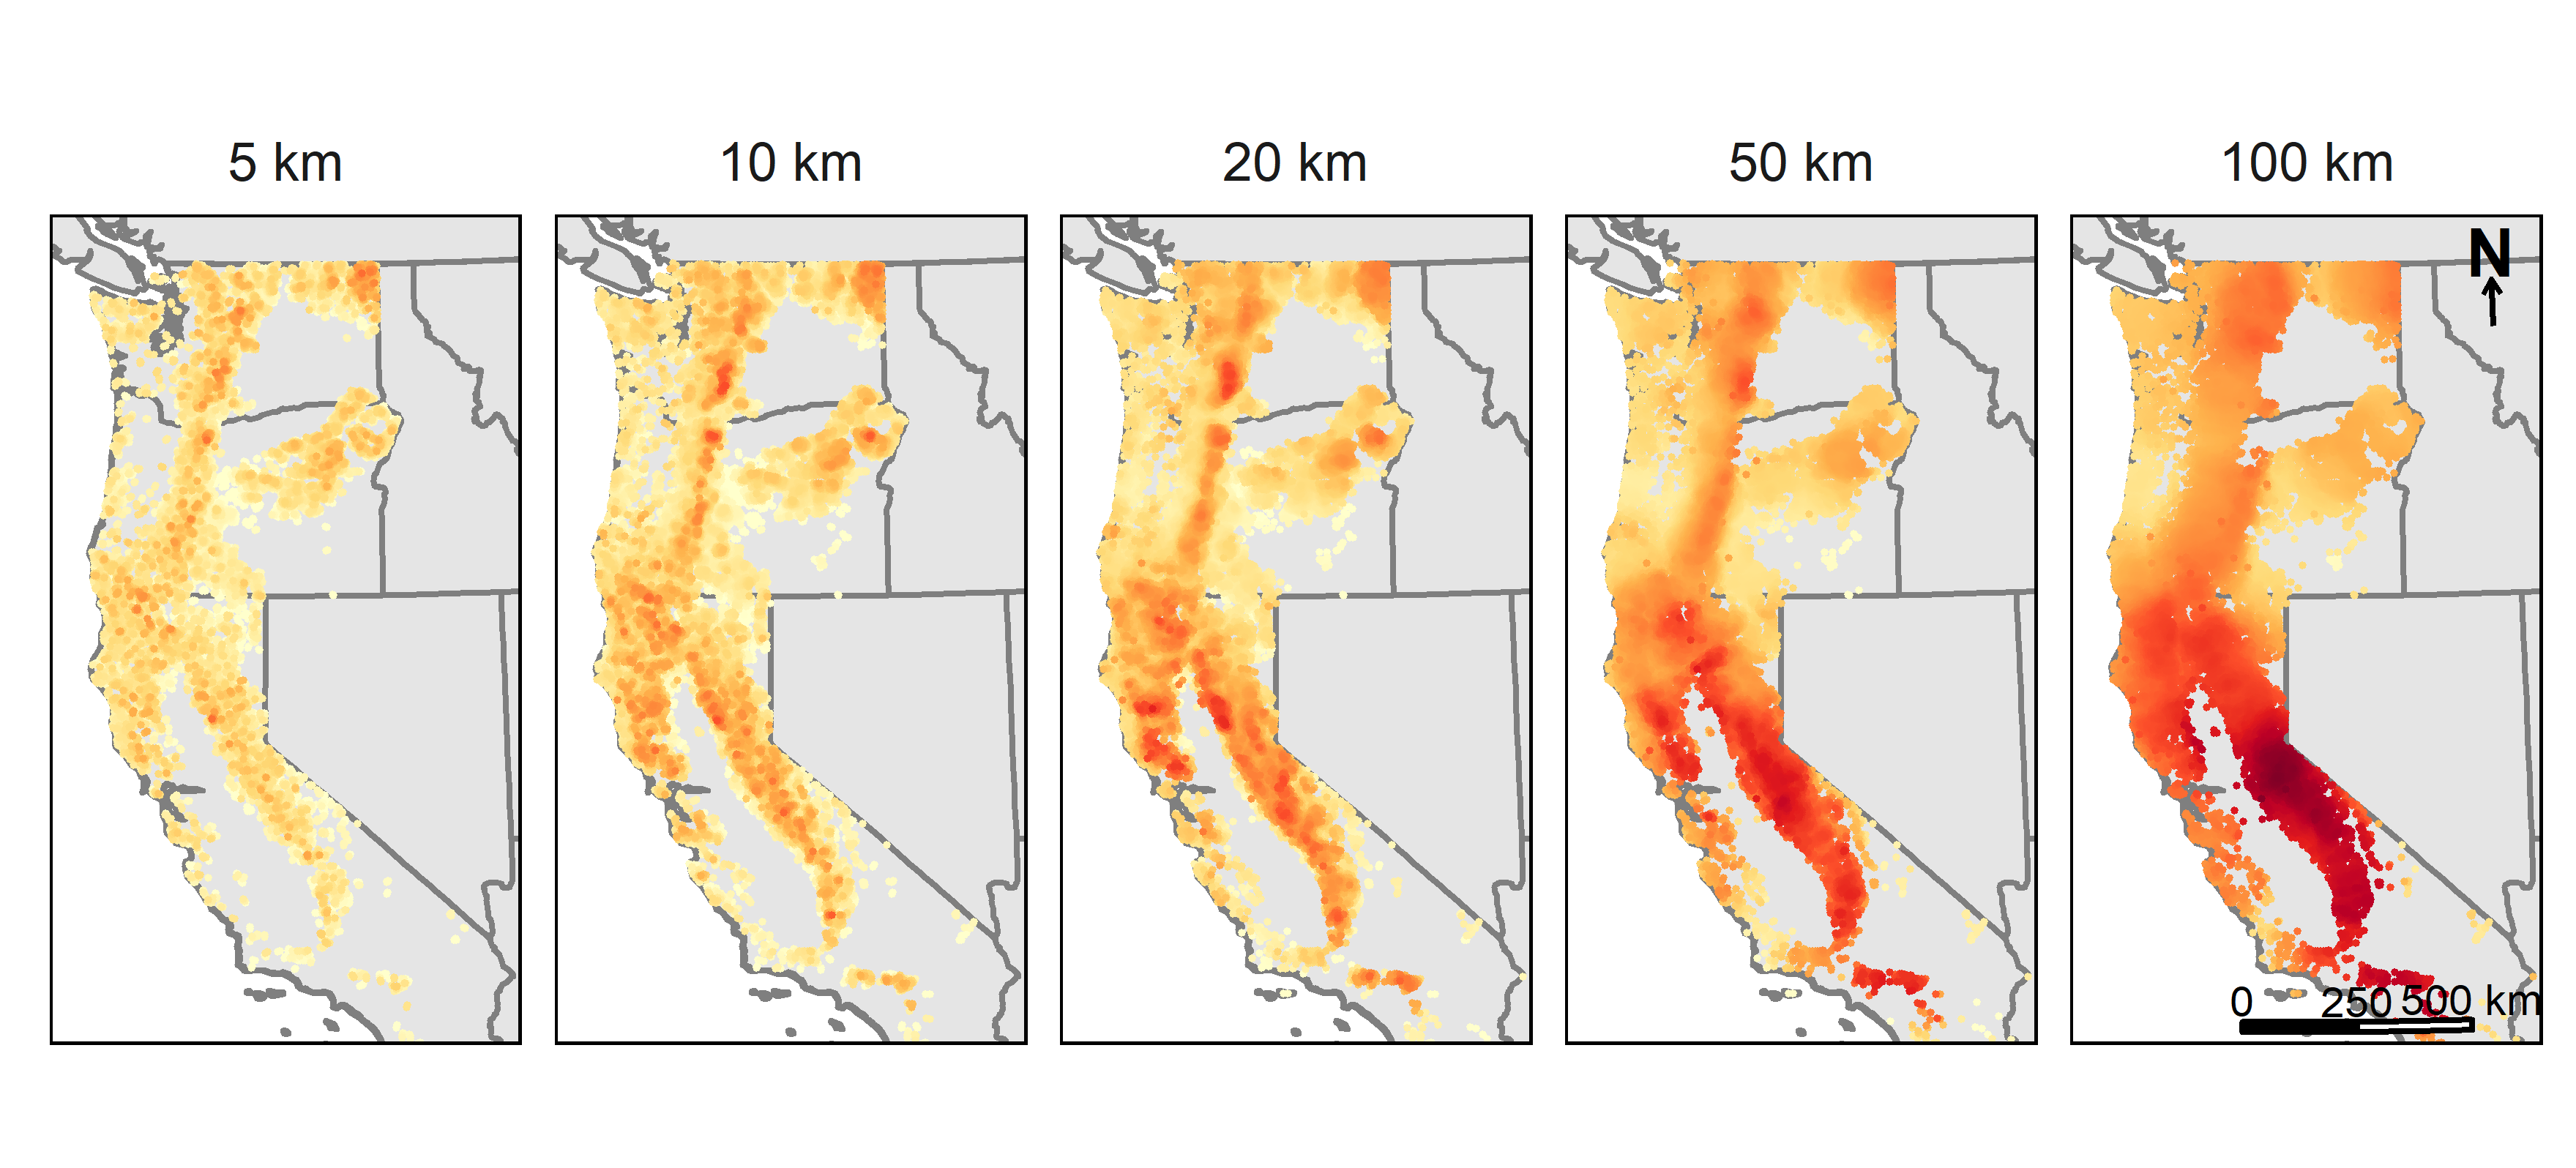 Tree gamma diversity in Pacific states - figure by QDR